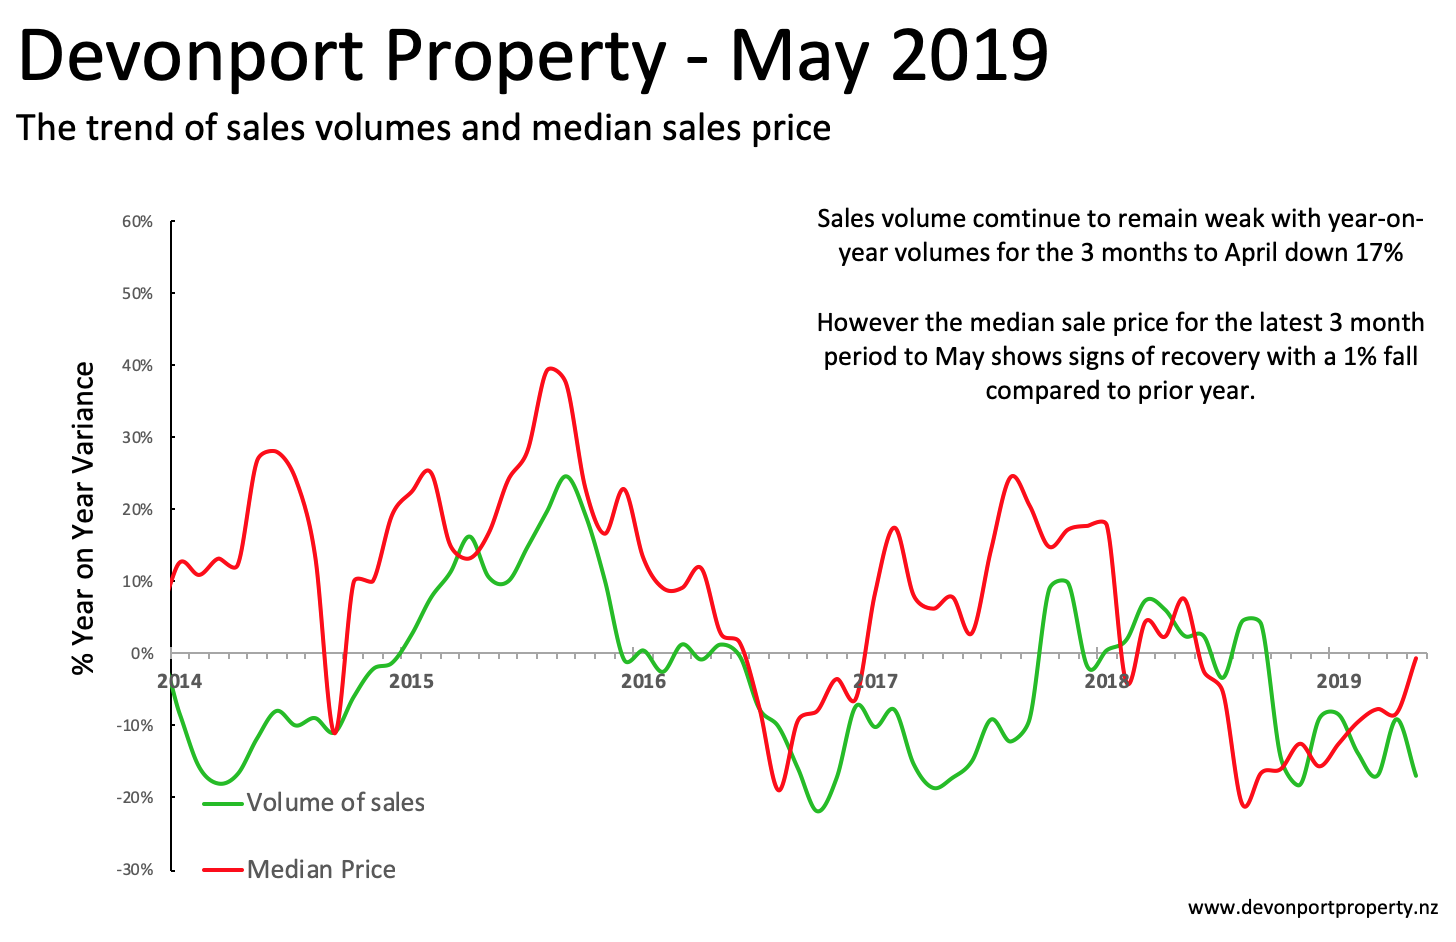 Devonport Property May 2019 All properties variance of sales and price 3MMA.png